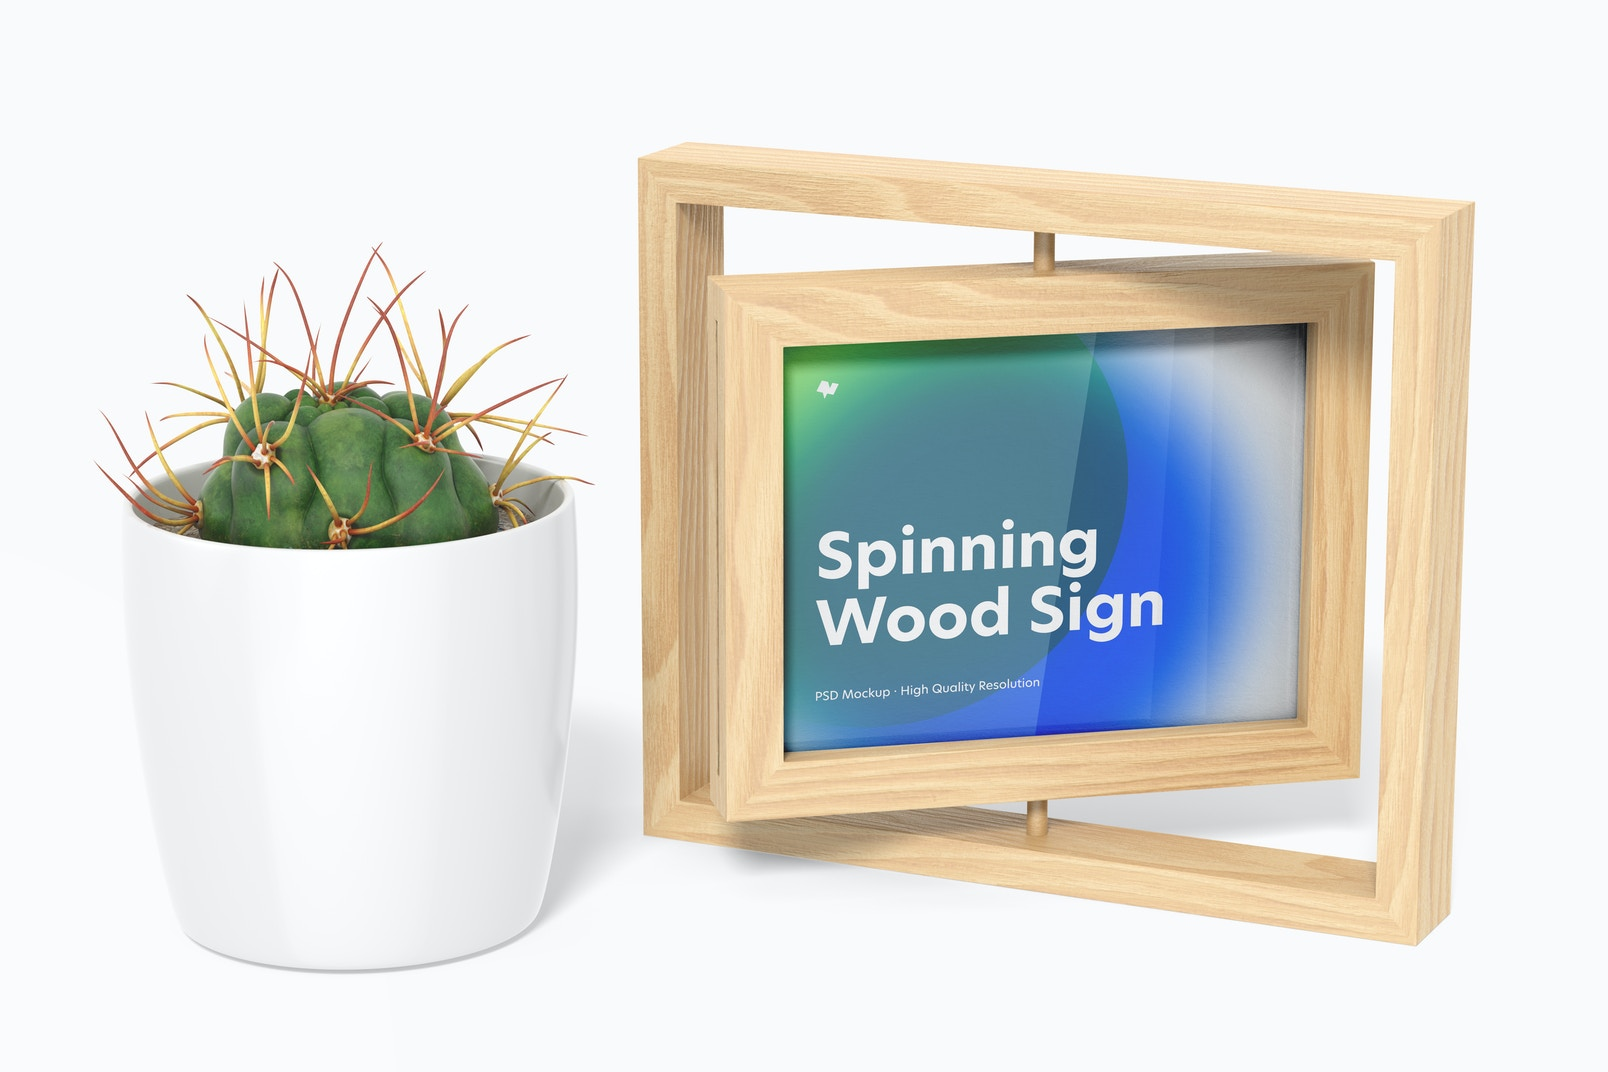 Spinning Wood Frame Sign with Pot Plant Mockup